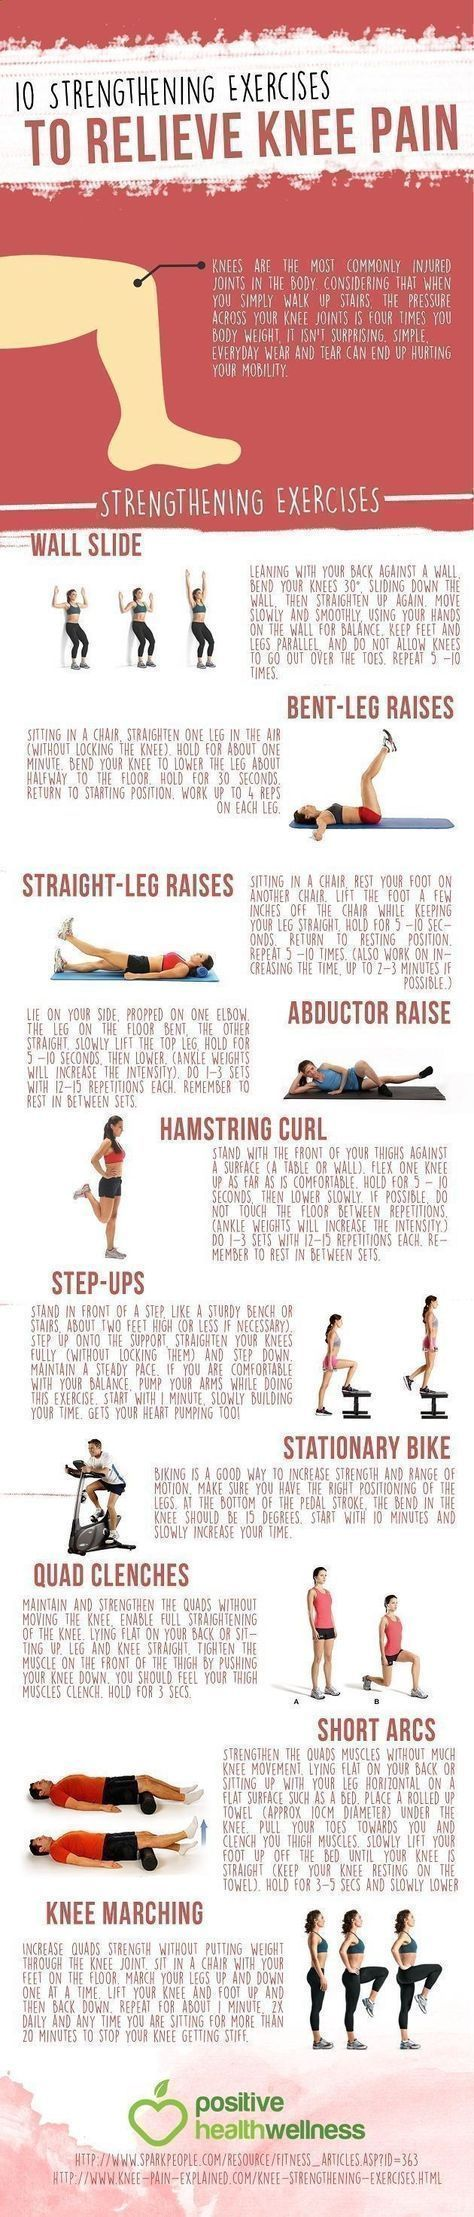 At home 10 Strengthening Exercises to Relieve Knee Pain.